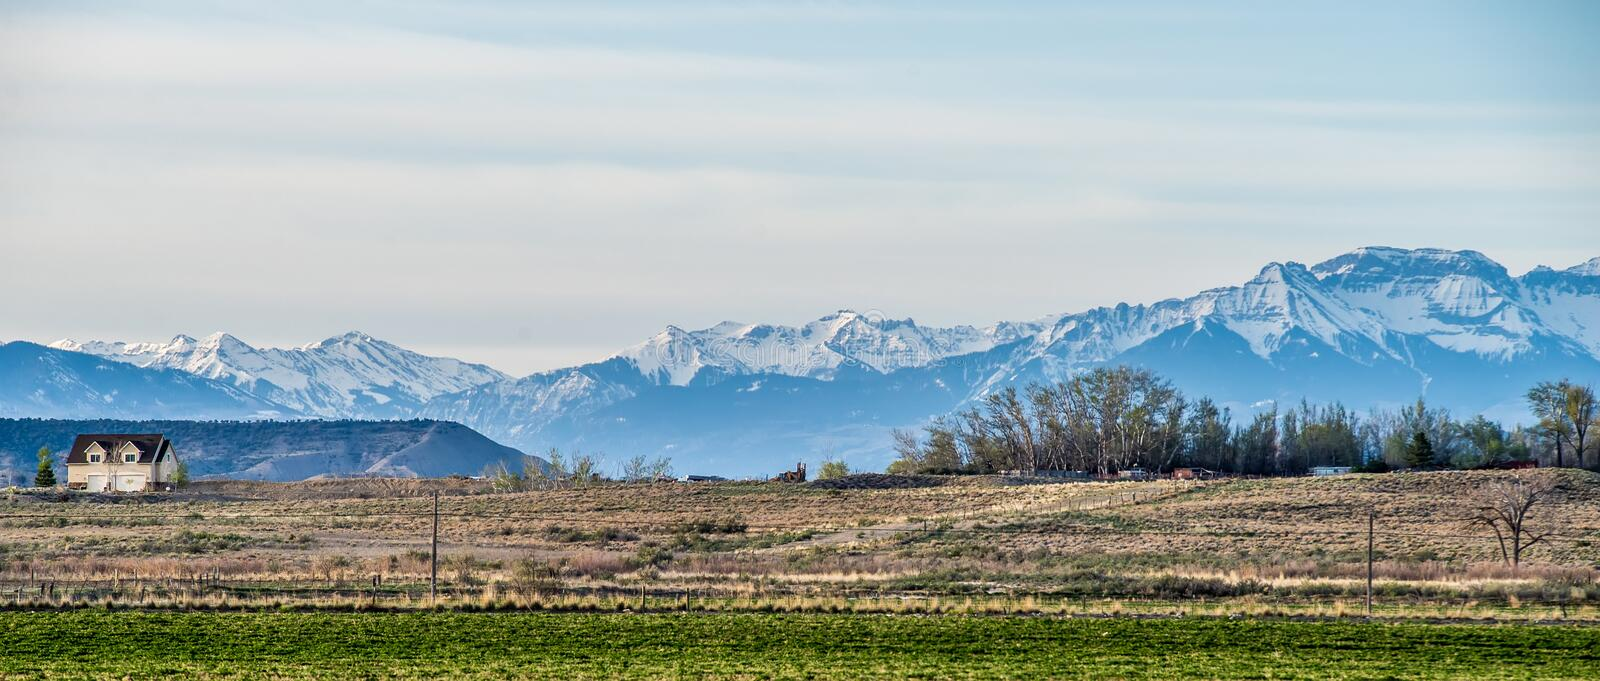 At the foothills of colorado rockies stock image